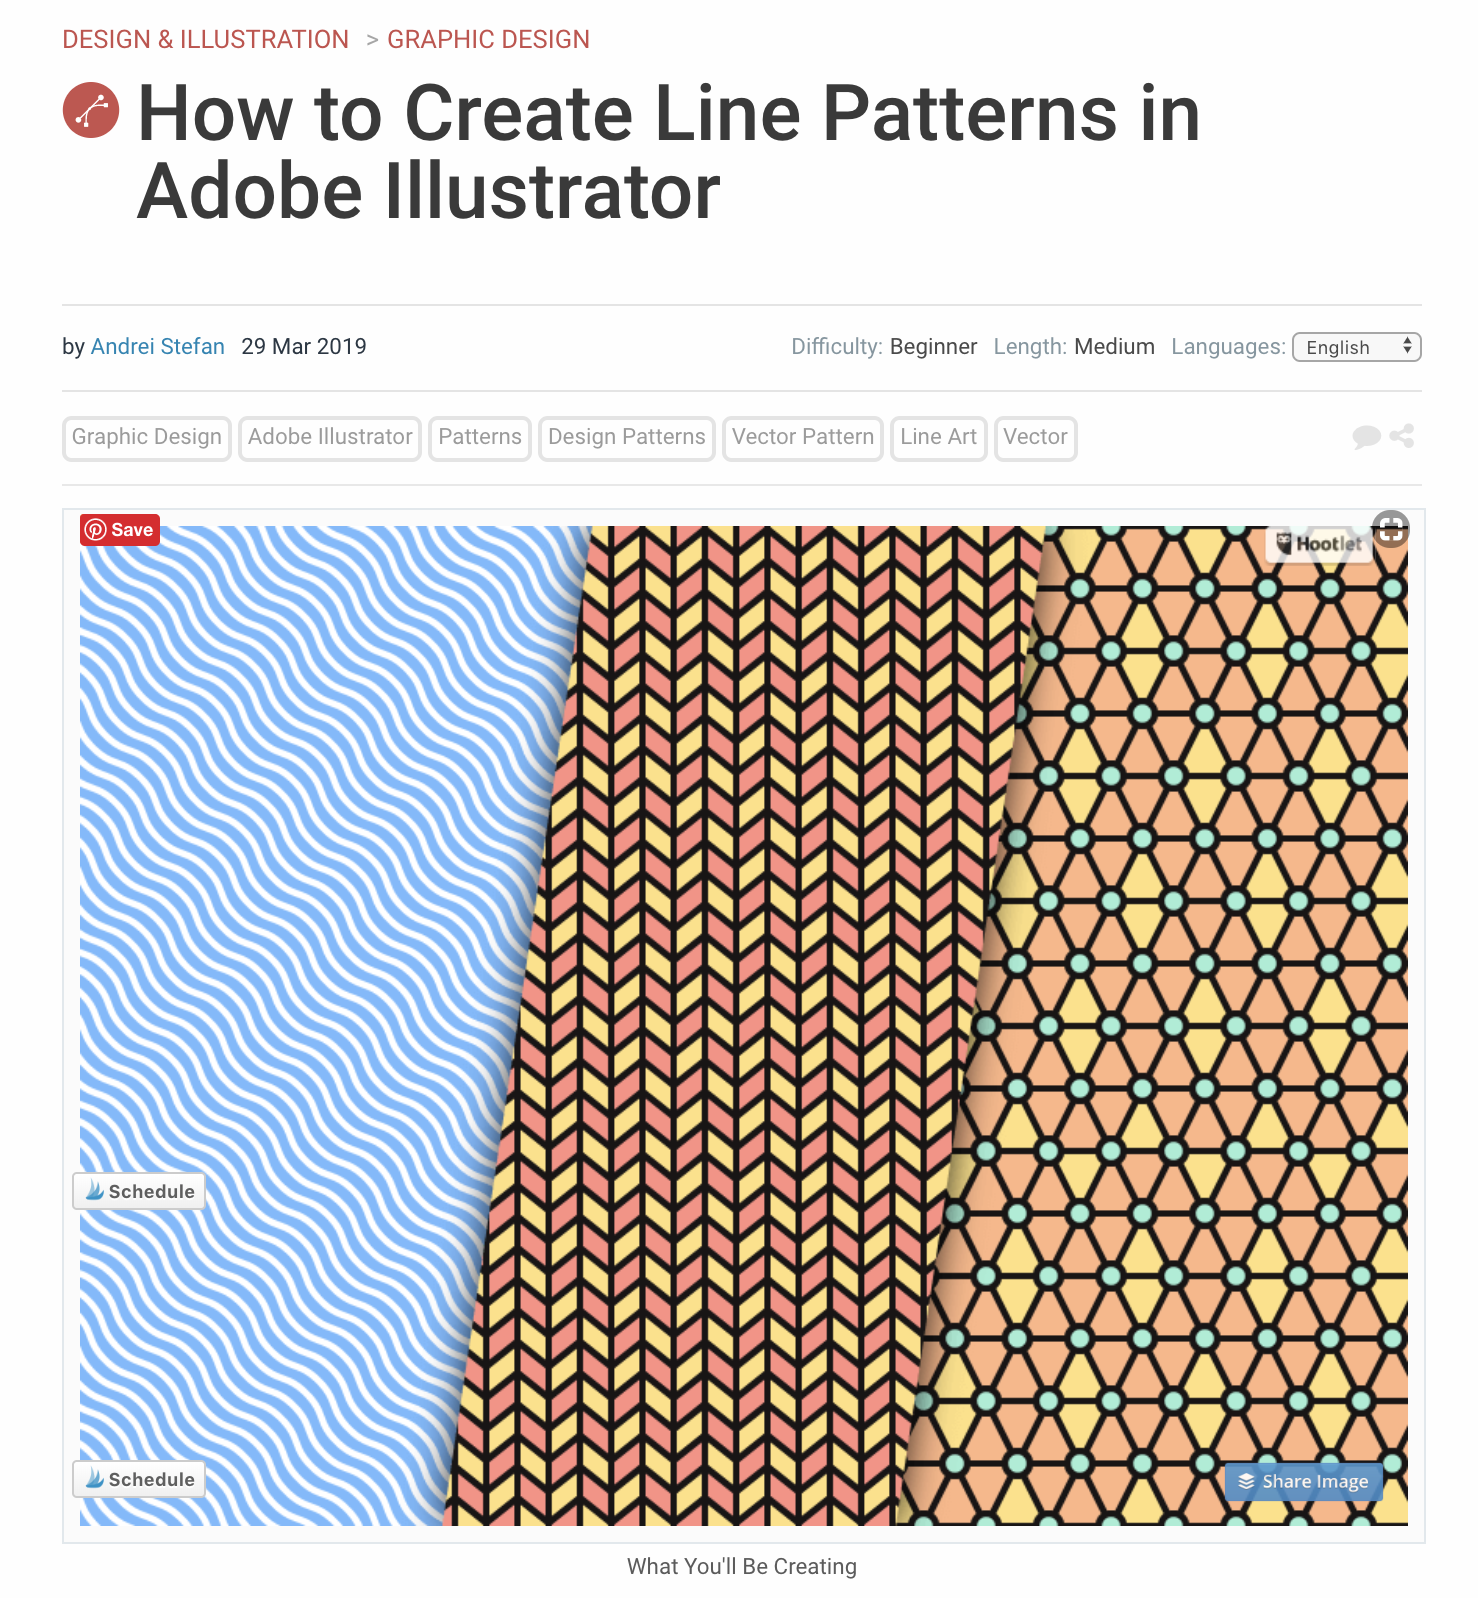 Creating line patterns with Adobe Illustrator